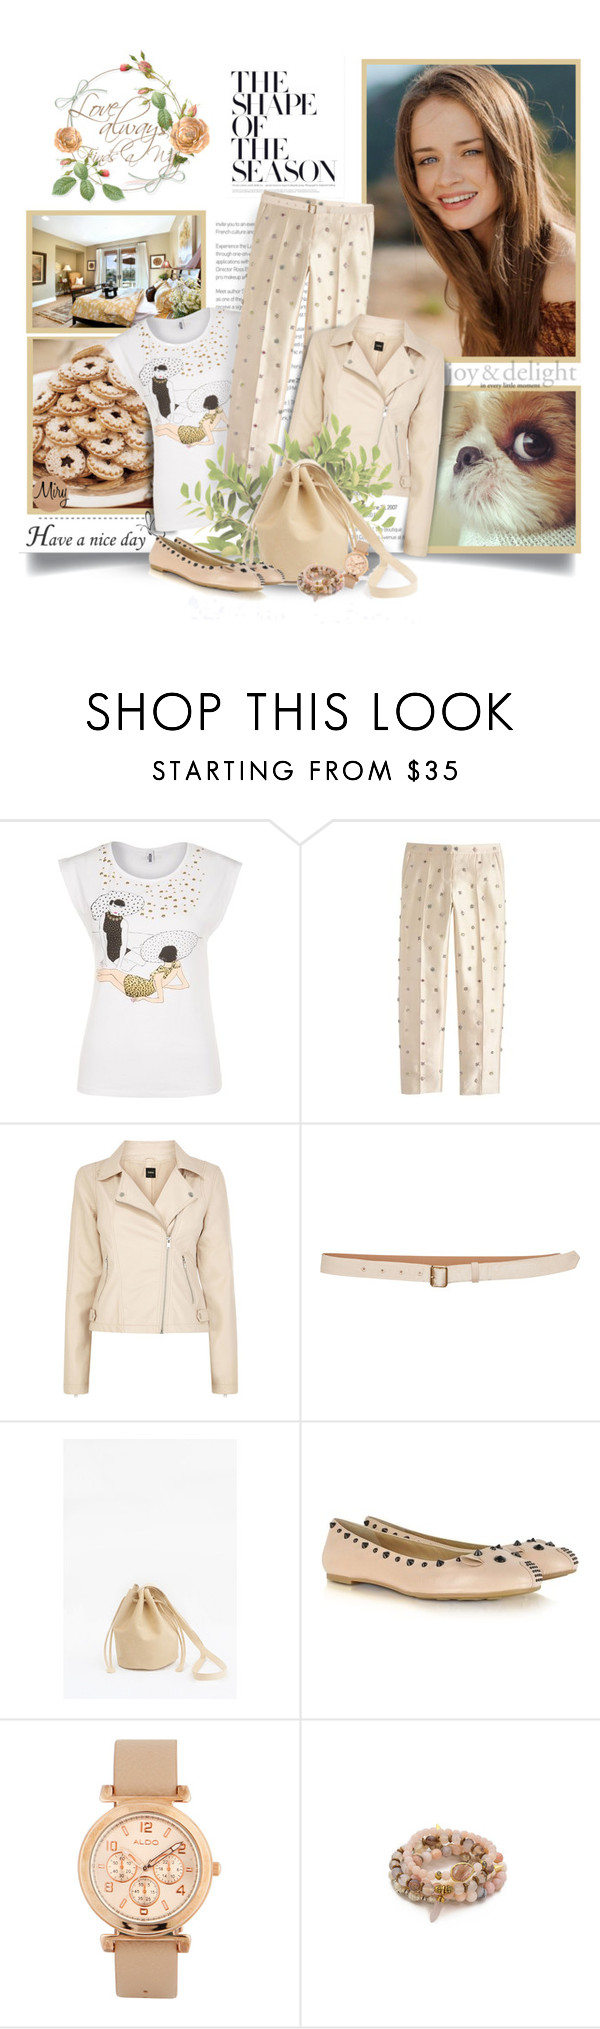 """""""Cool Style"""" by thewondersoffashion ❤ liked on Polyvore featuring Have a Nice Day, Moschino, J.Crew, Oasis, Rochas, Marc by Marc Jacobs, ALDO and Lacey Ryan"""